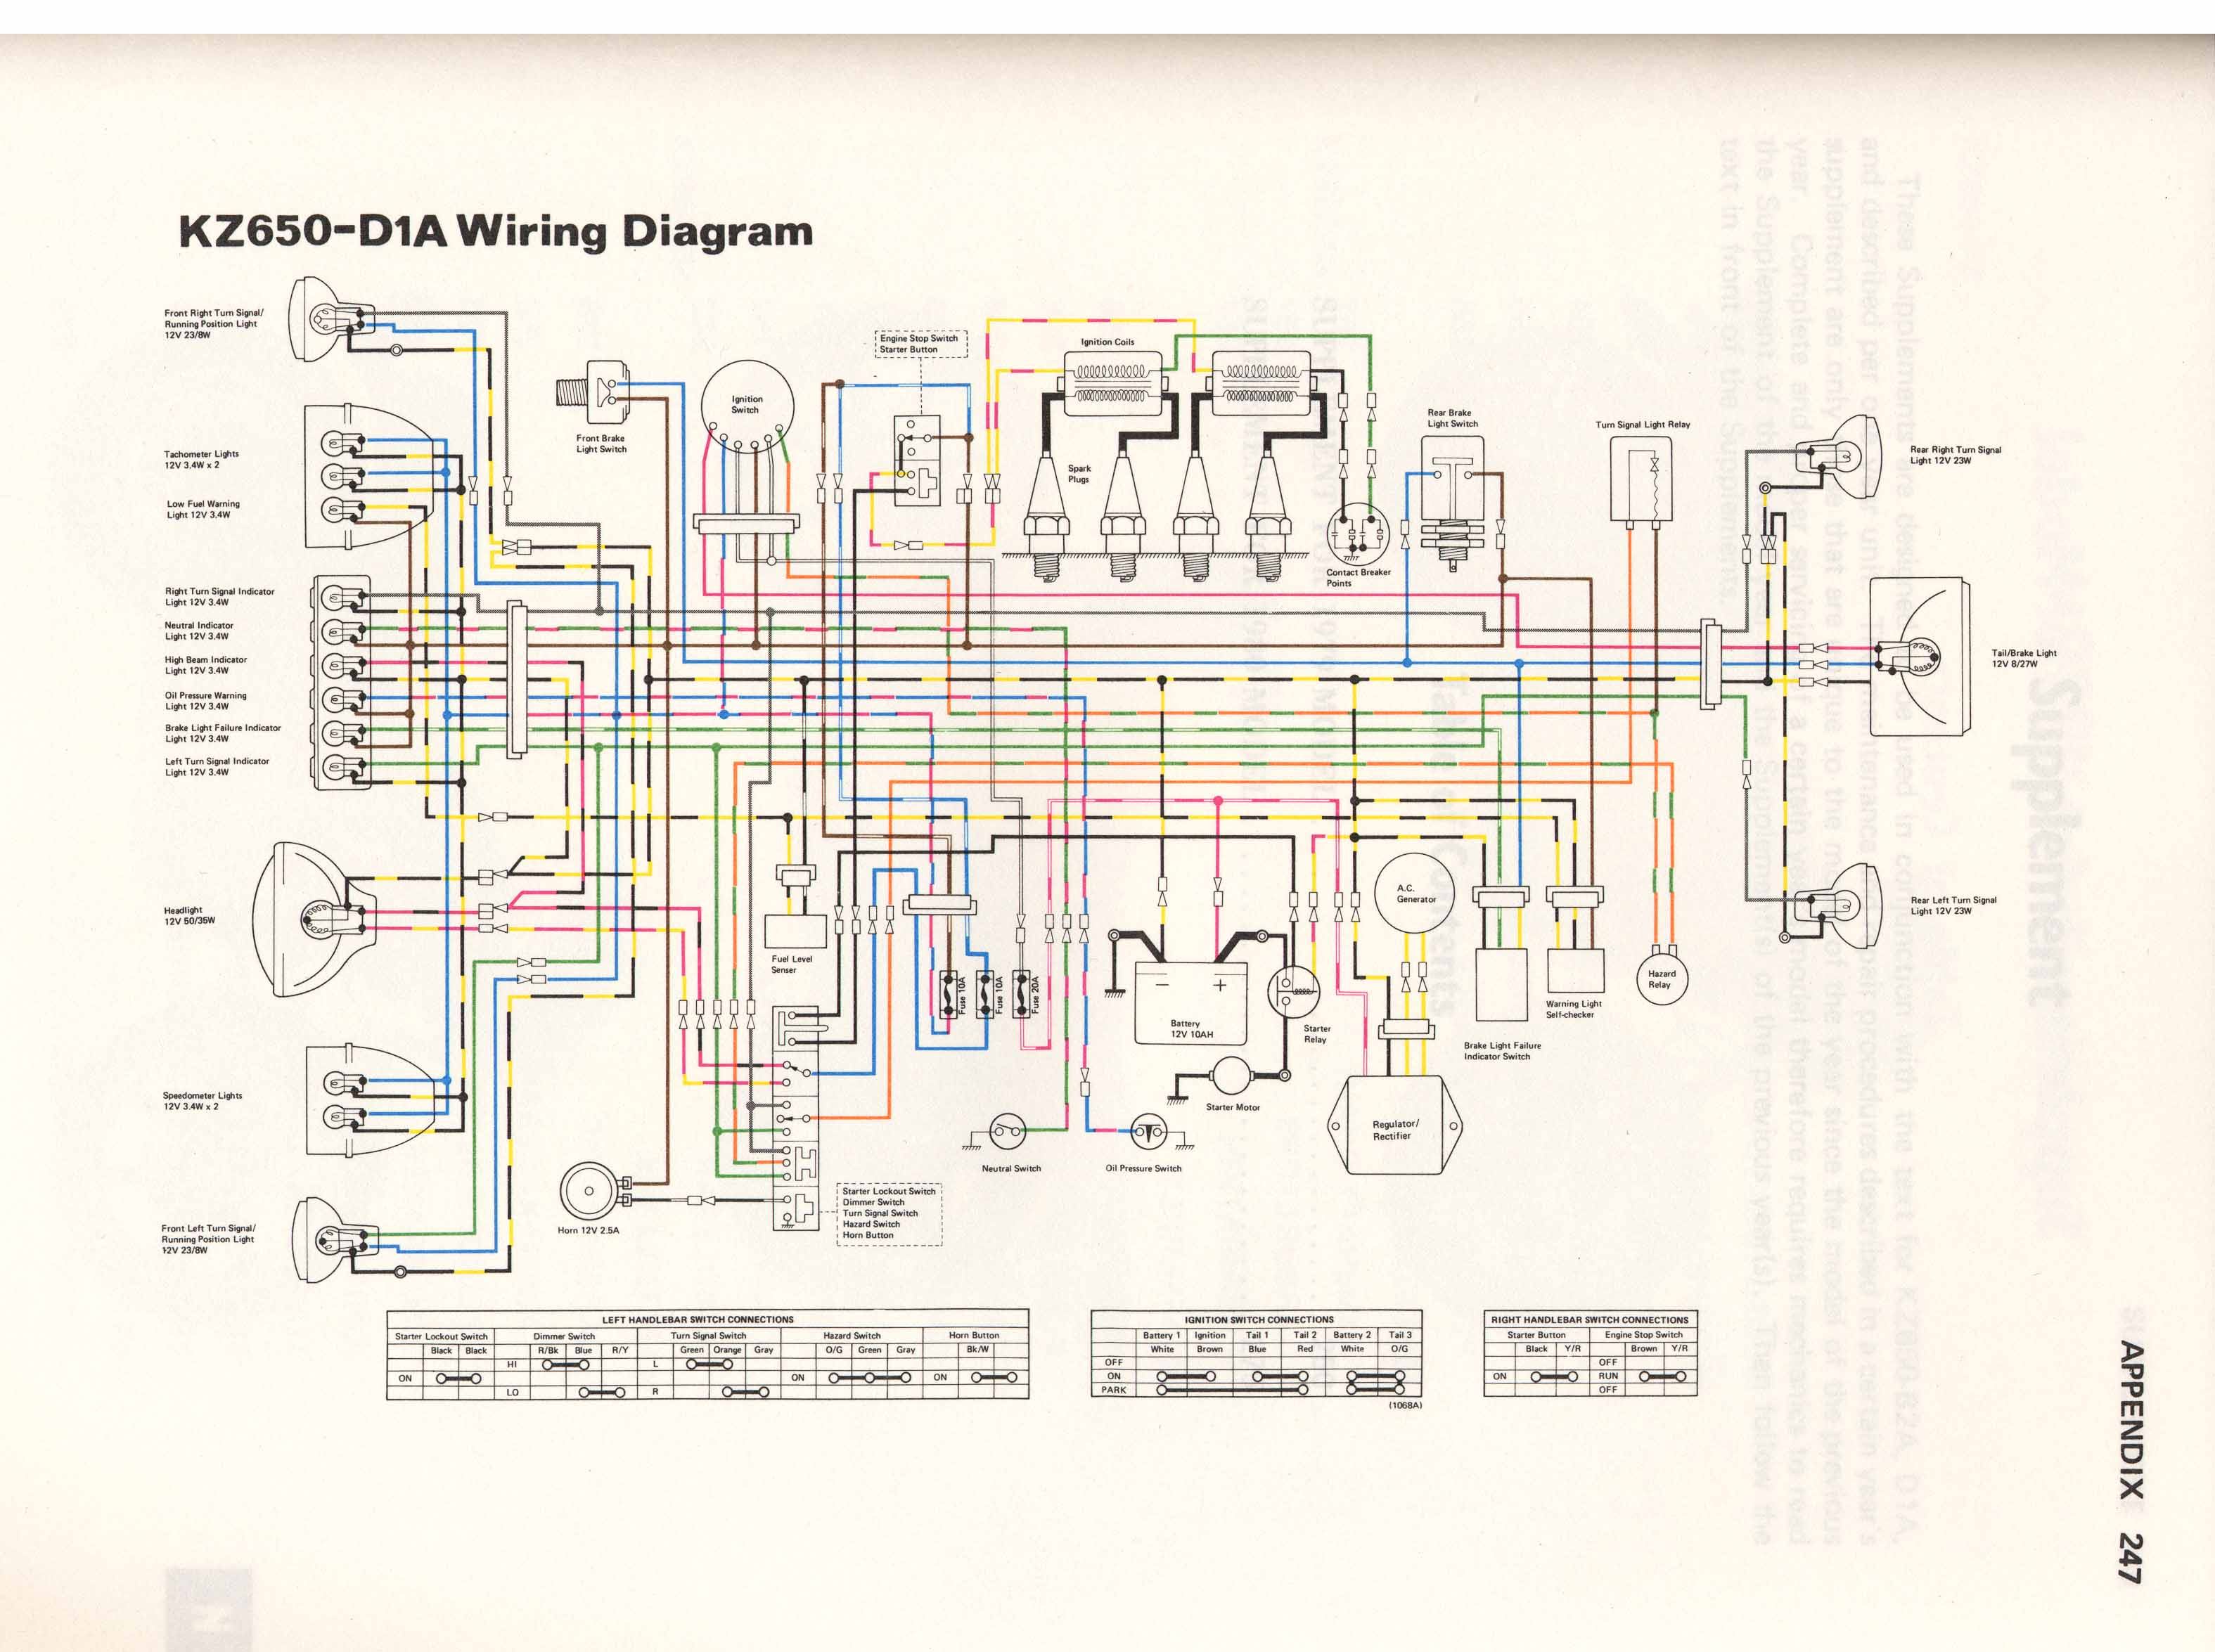 Wiring Diagram For A 1977 Suzuki 550 Library 1981 Kz650 Diagrams